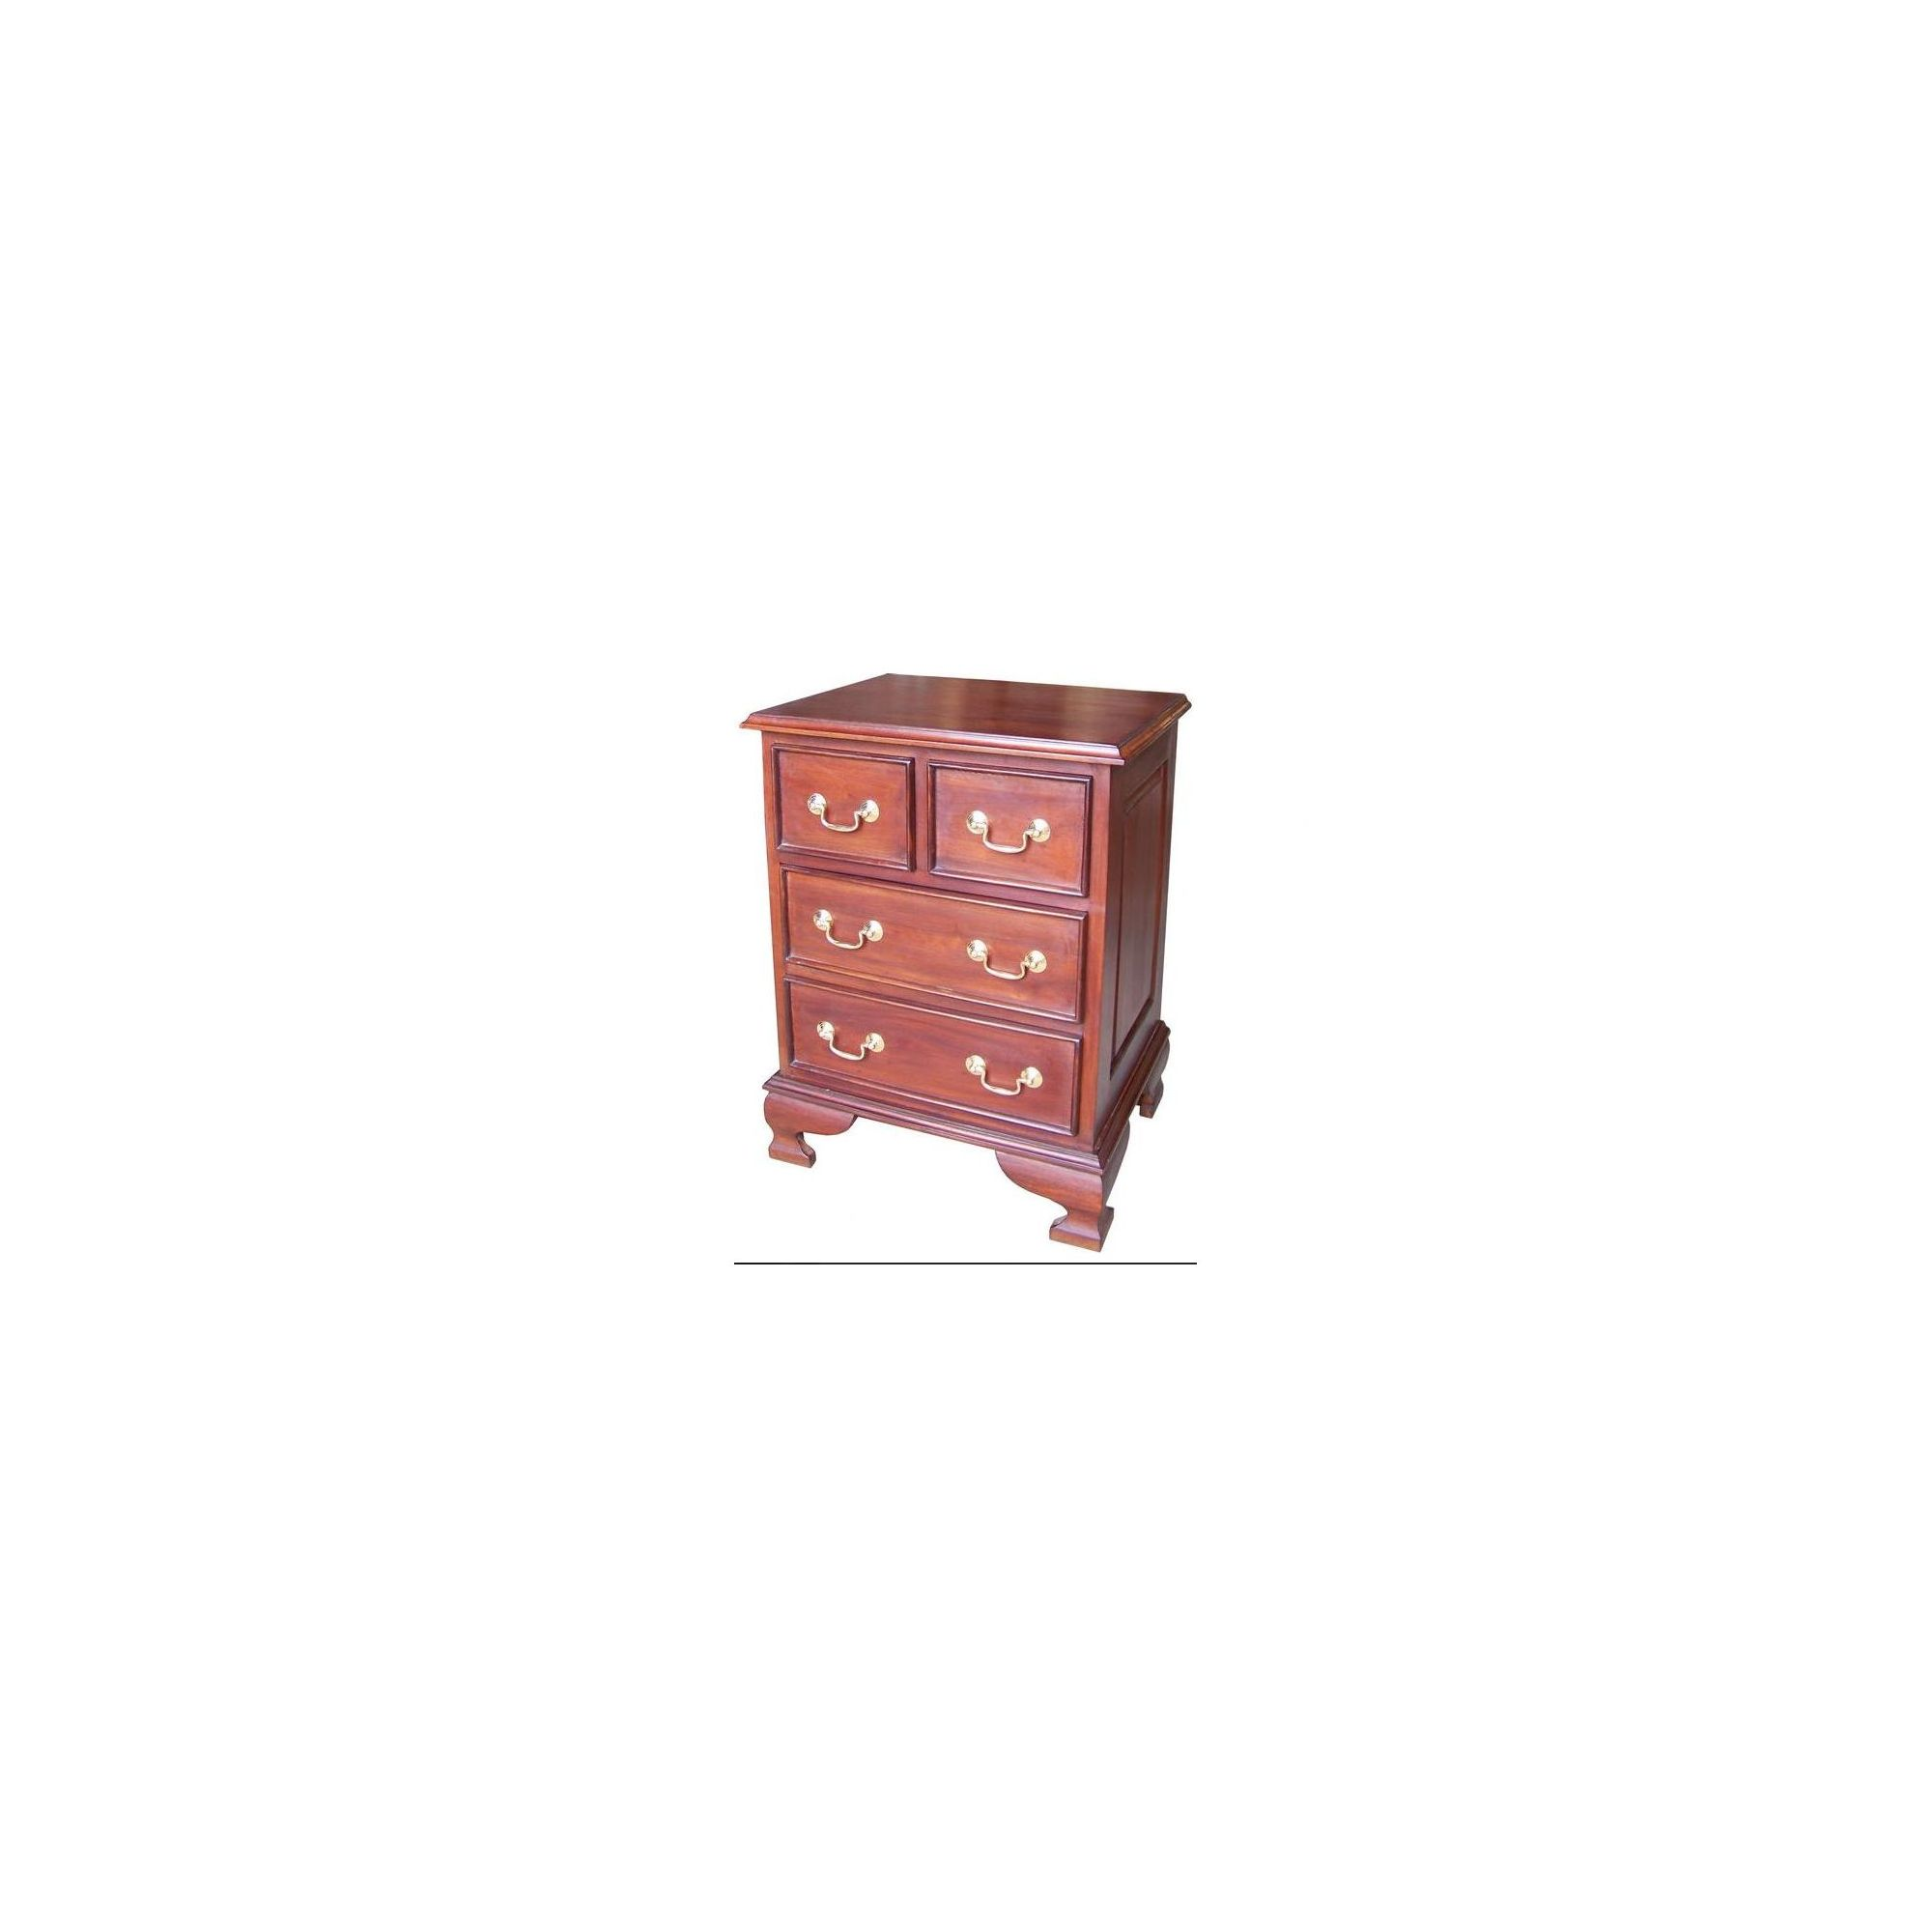 Lock stock and barrel Mahogany 4 Drawer Bedside Table in Mahogany - Wax at Tesco Direct